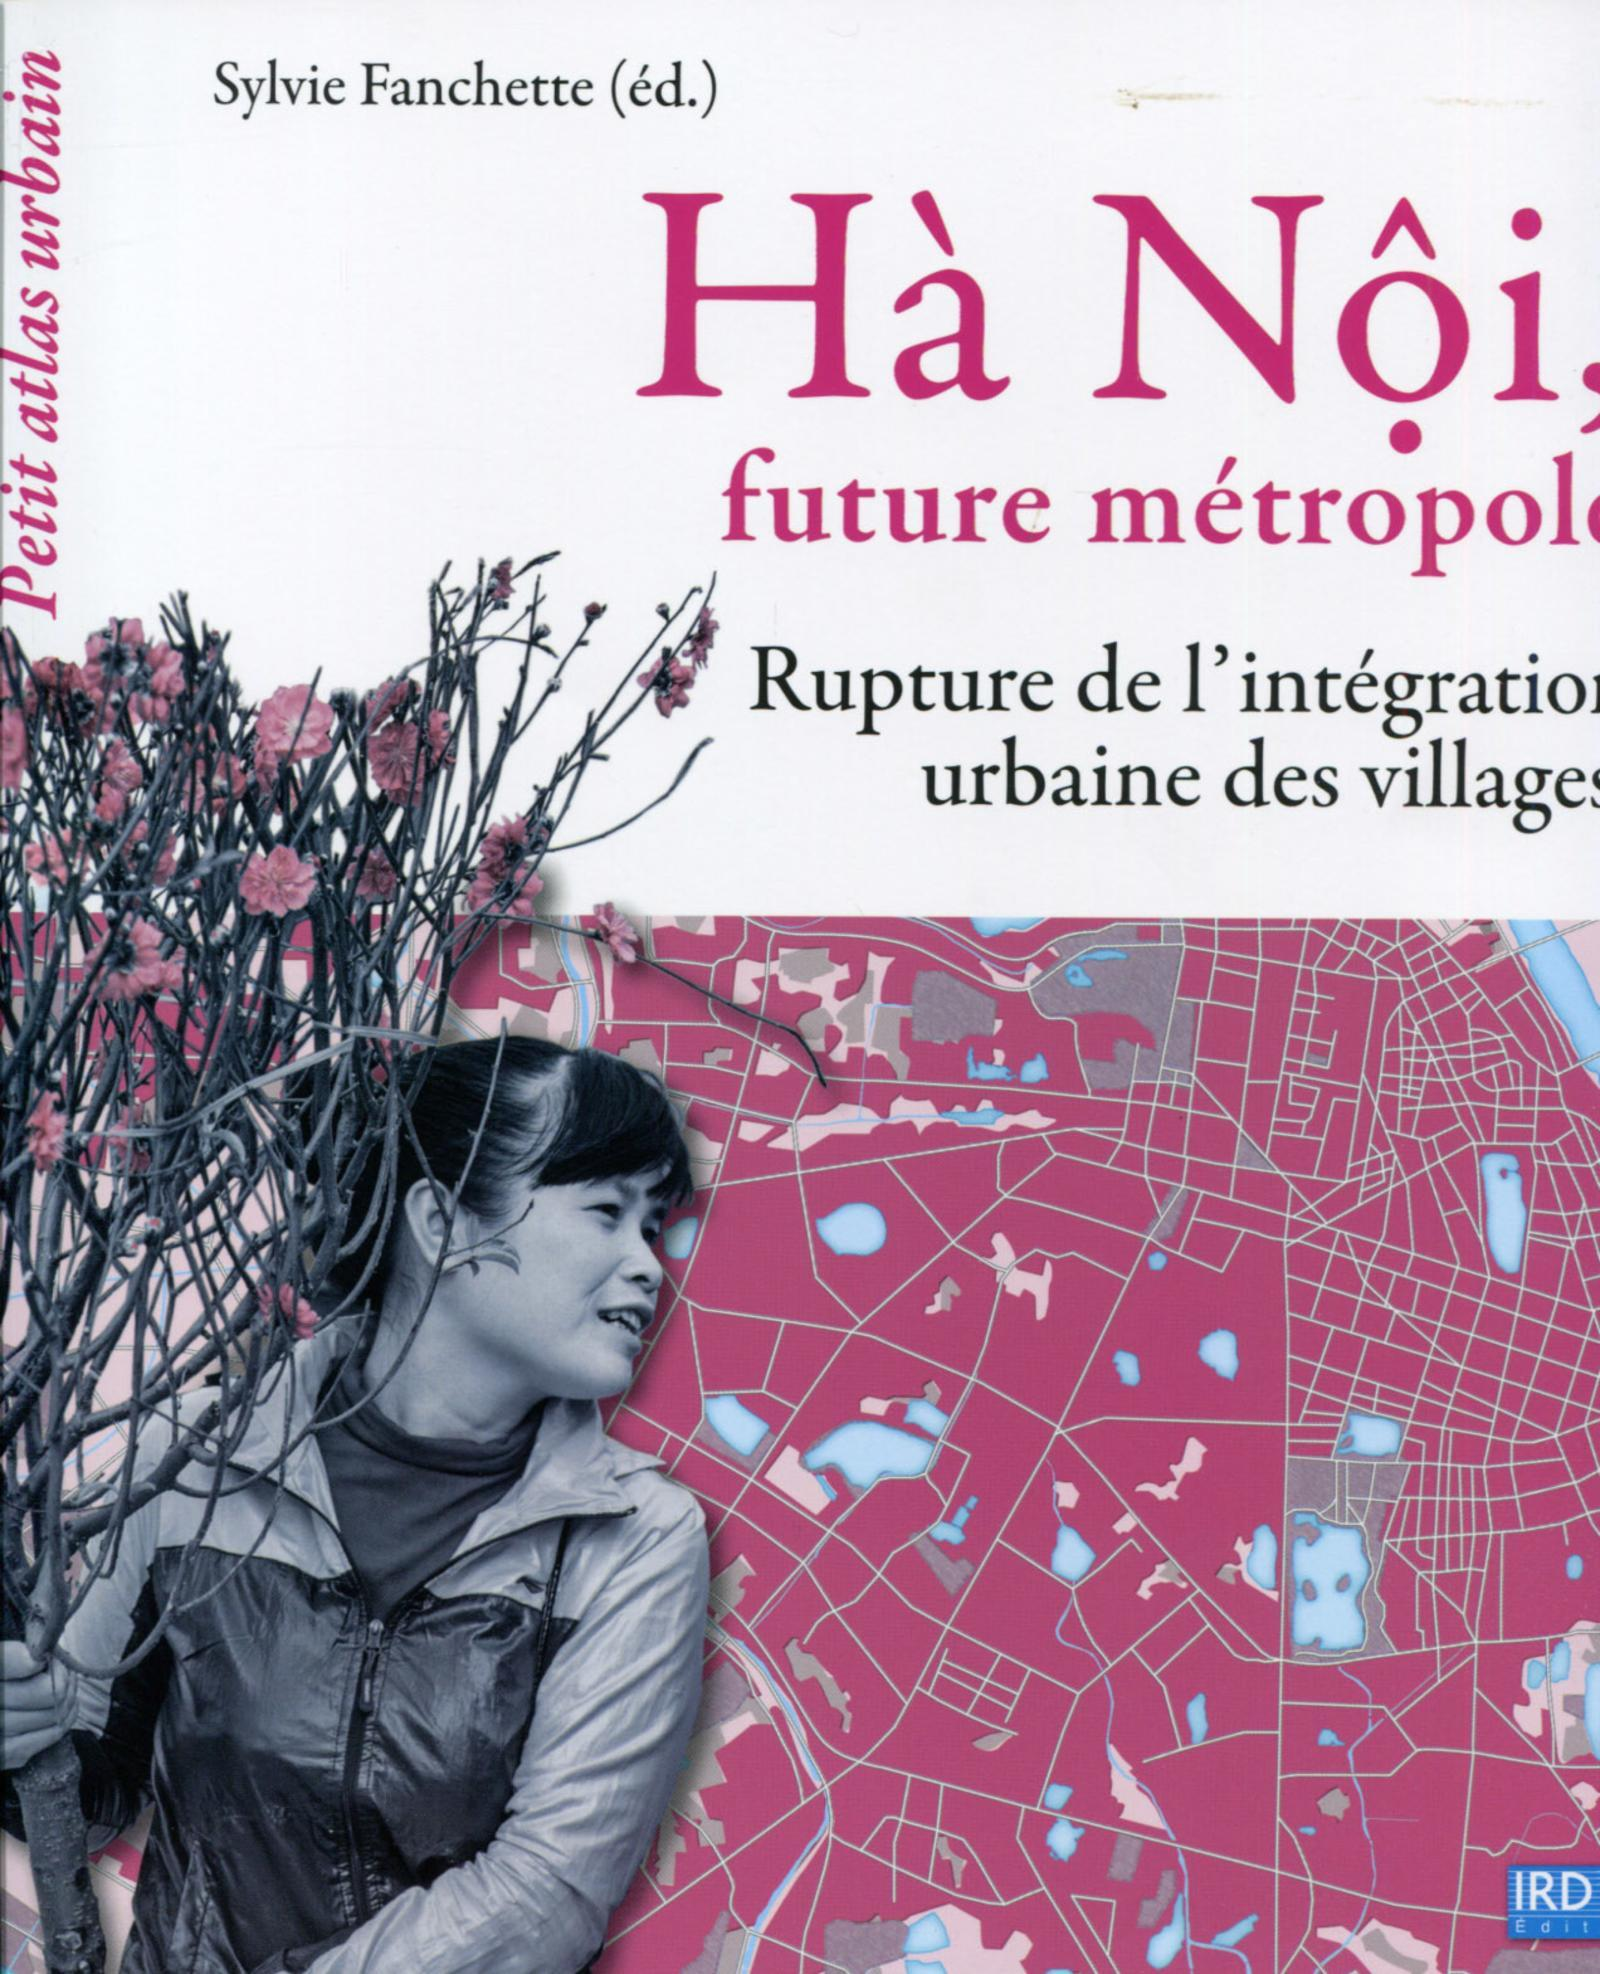 HA NOI FUTURE METROPOLE  RUPTURE DE L INTEGRATION URBAINE DES VILLAGES